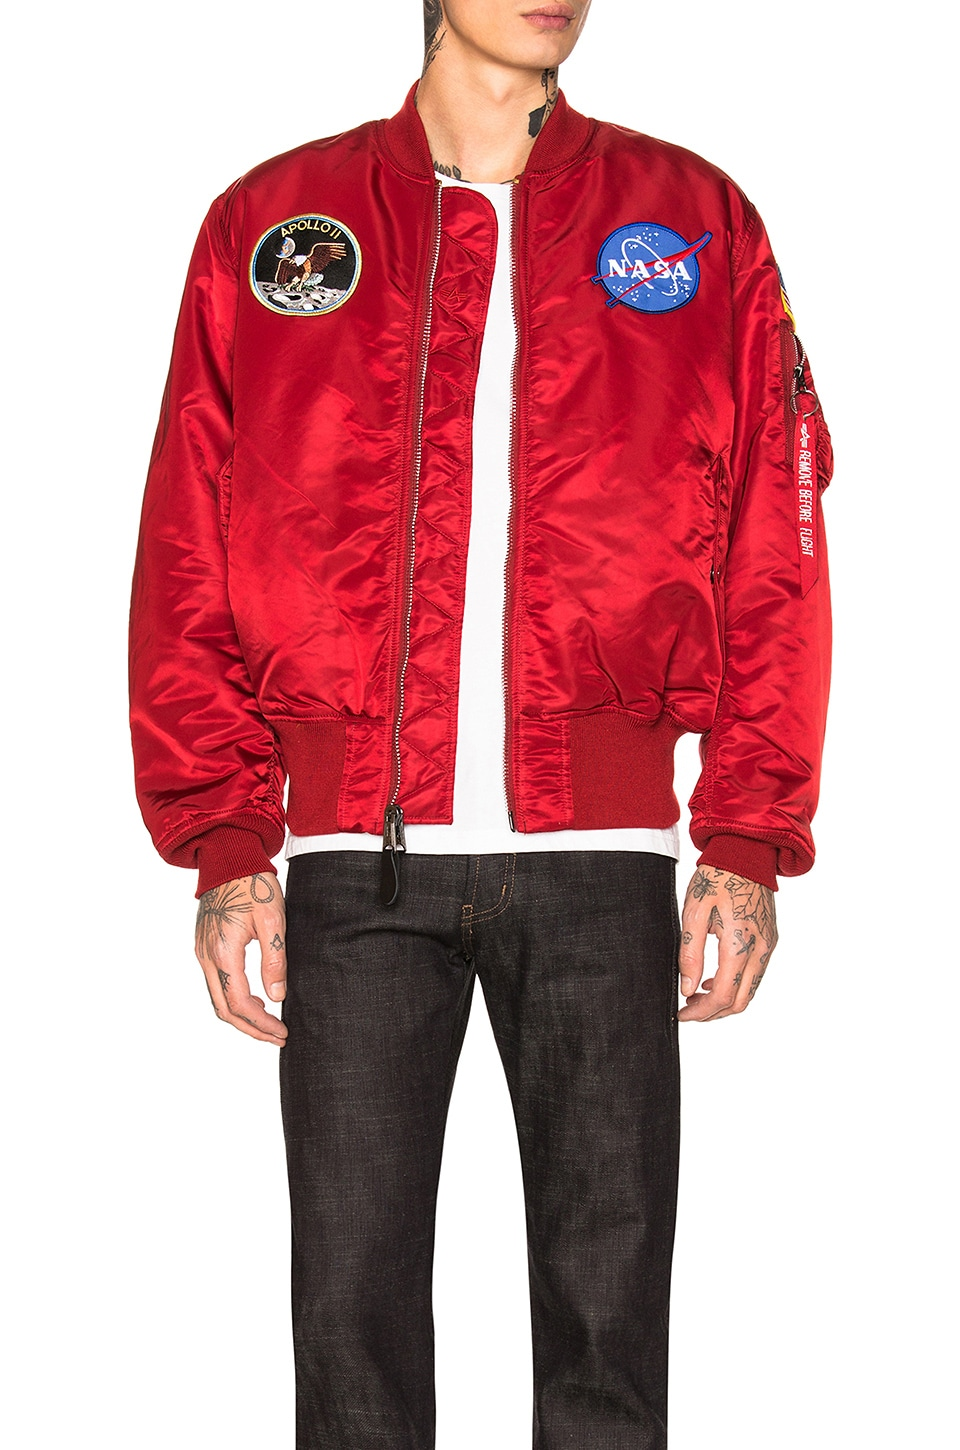 ALPHA INDUSTRIES MA-1 Apollo Jacket in Commander Red